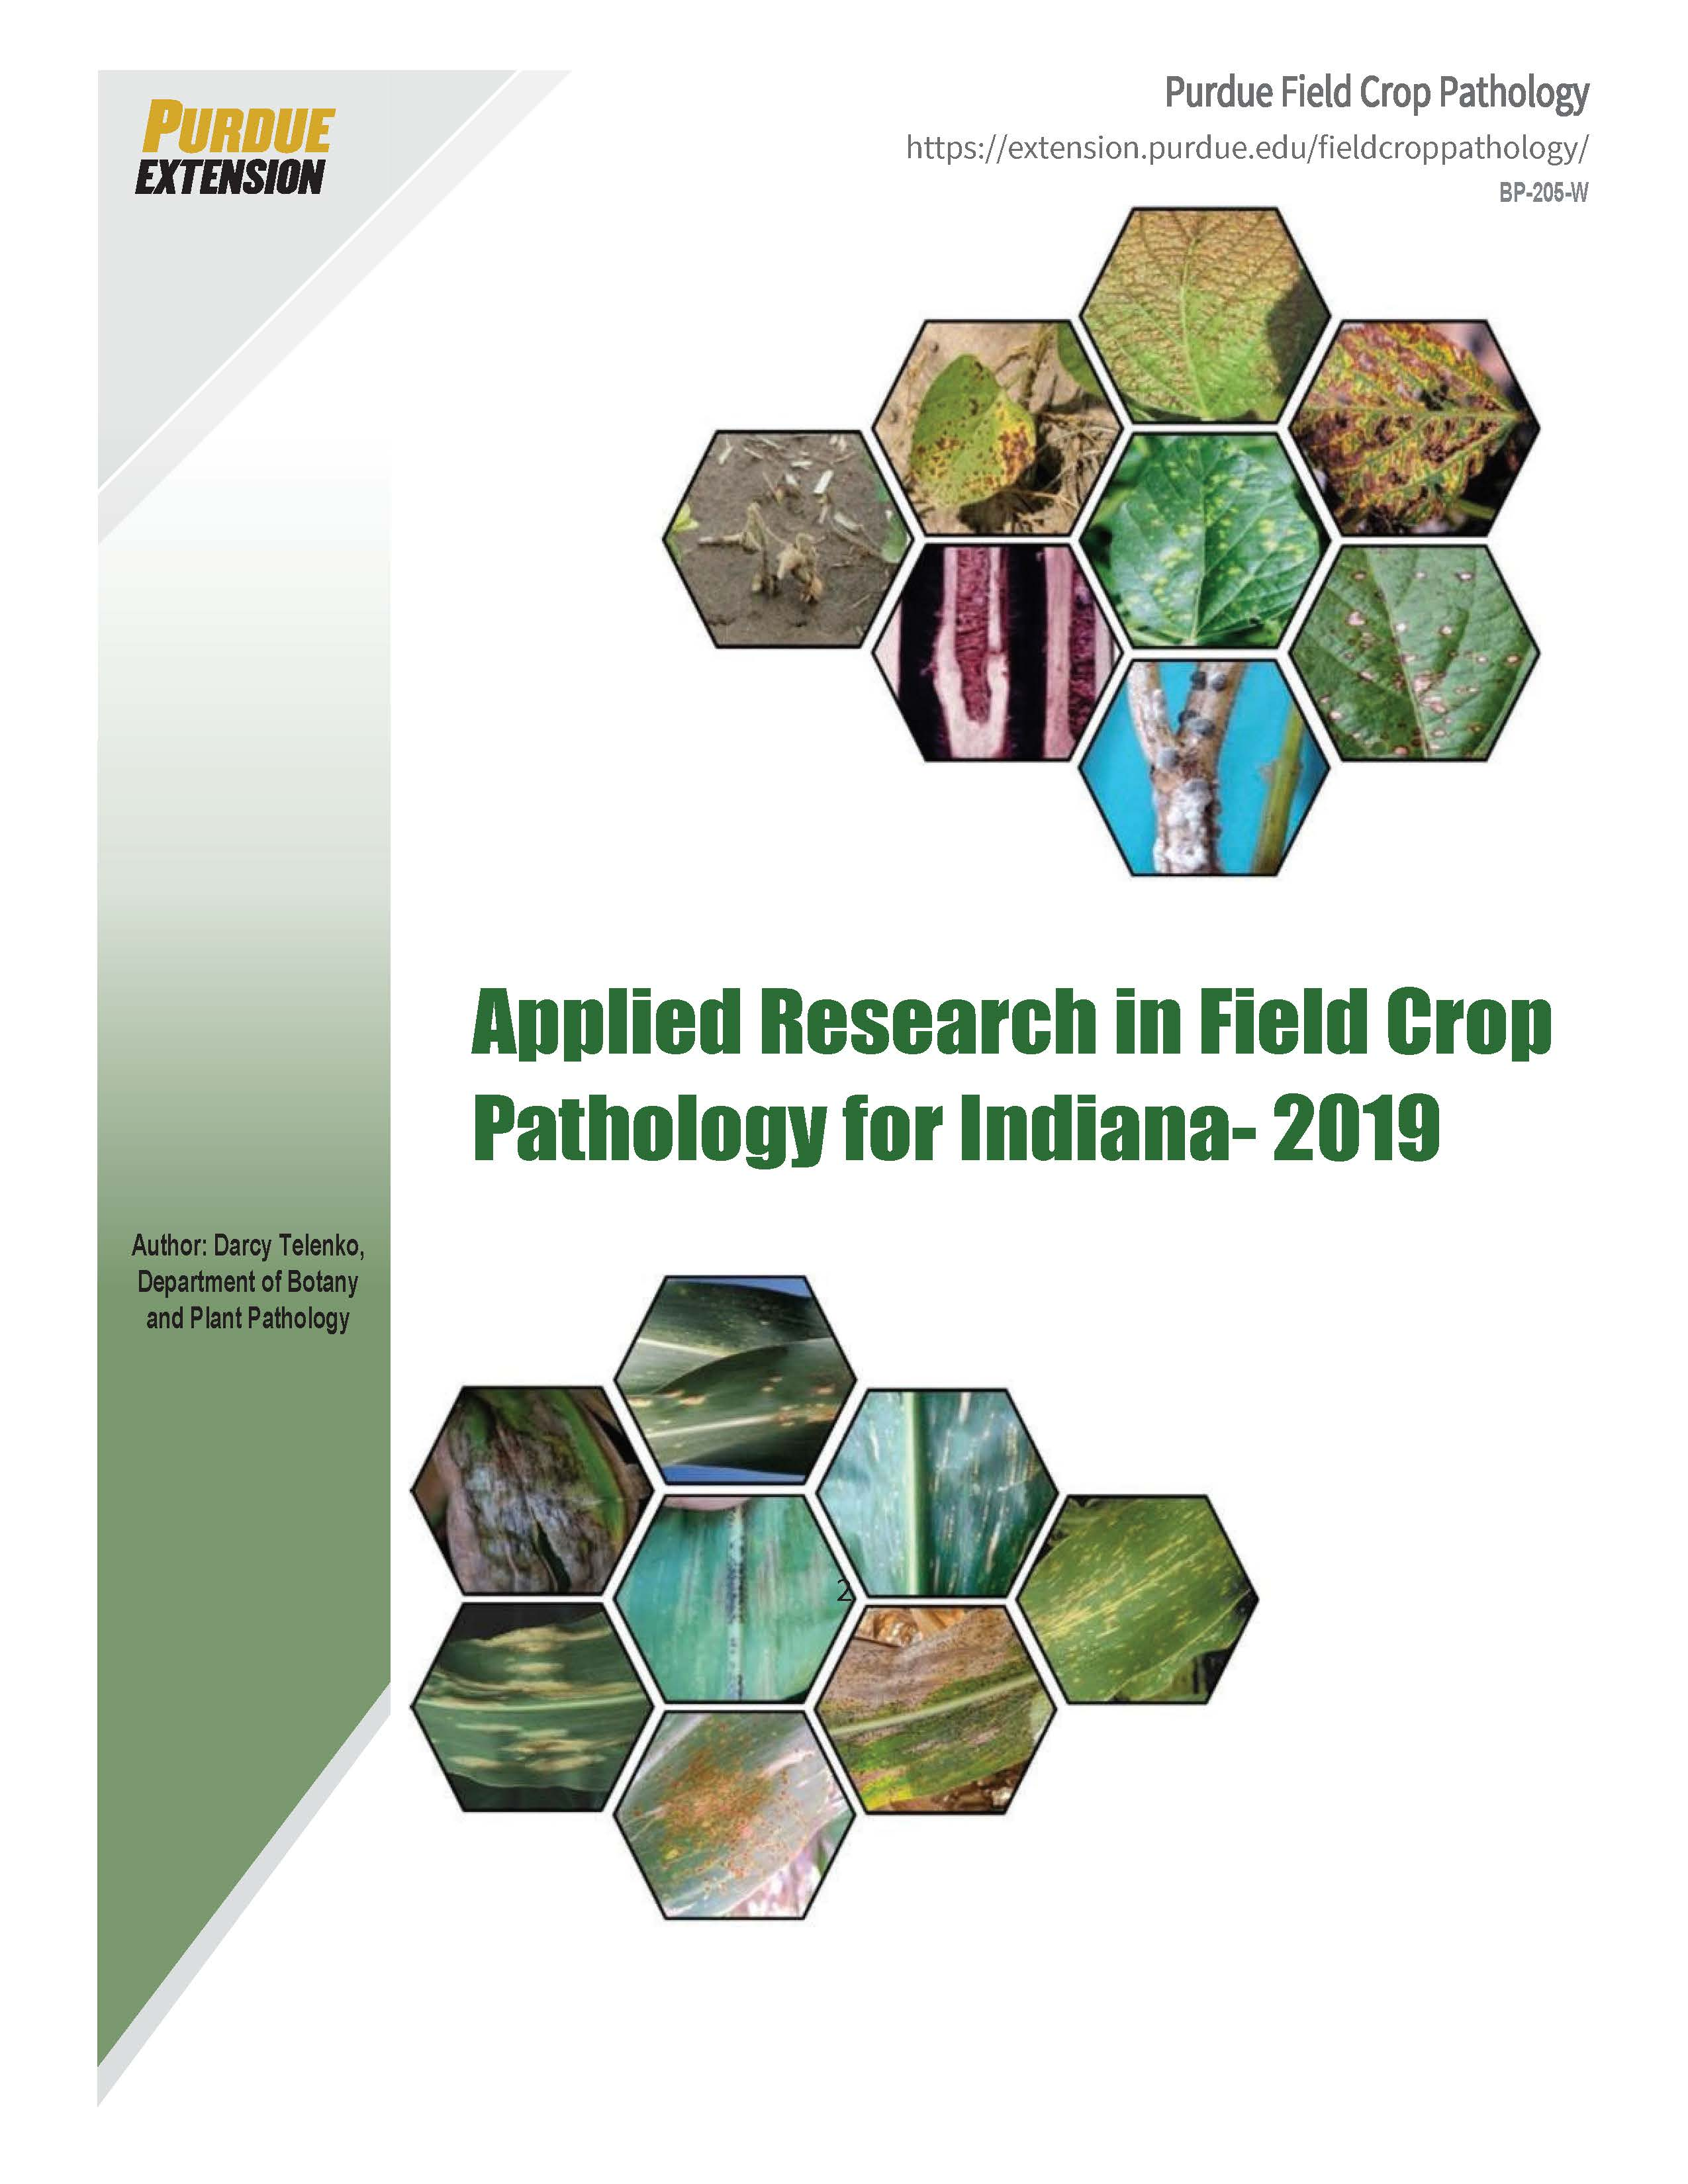 Applied Research in Field Crop Pathology for Indiana - 2019 (PDF)